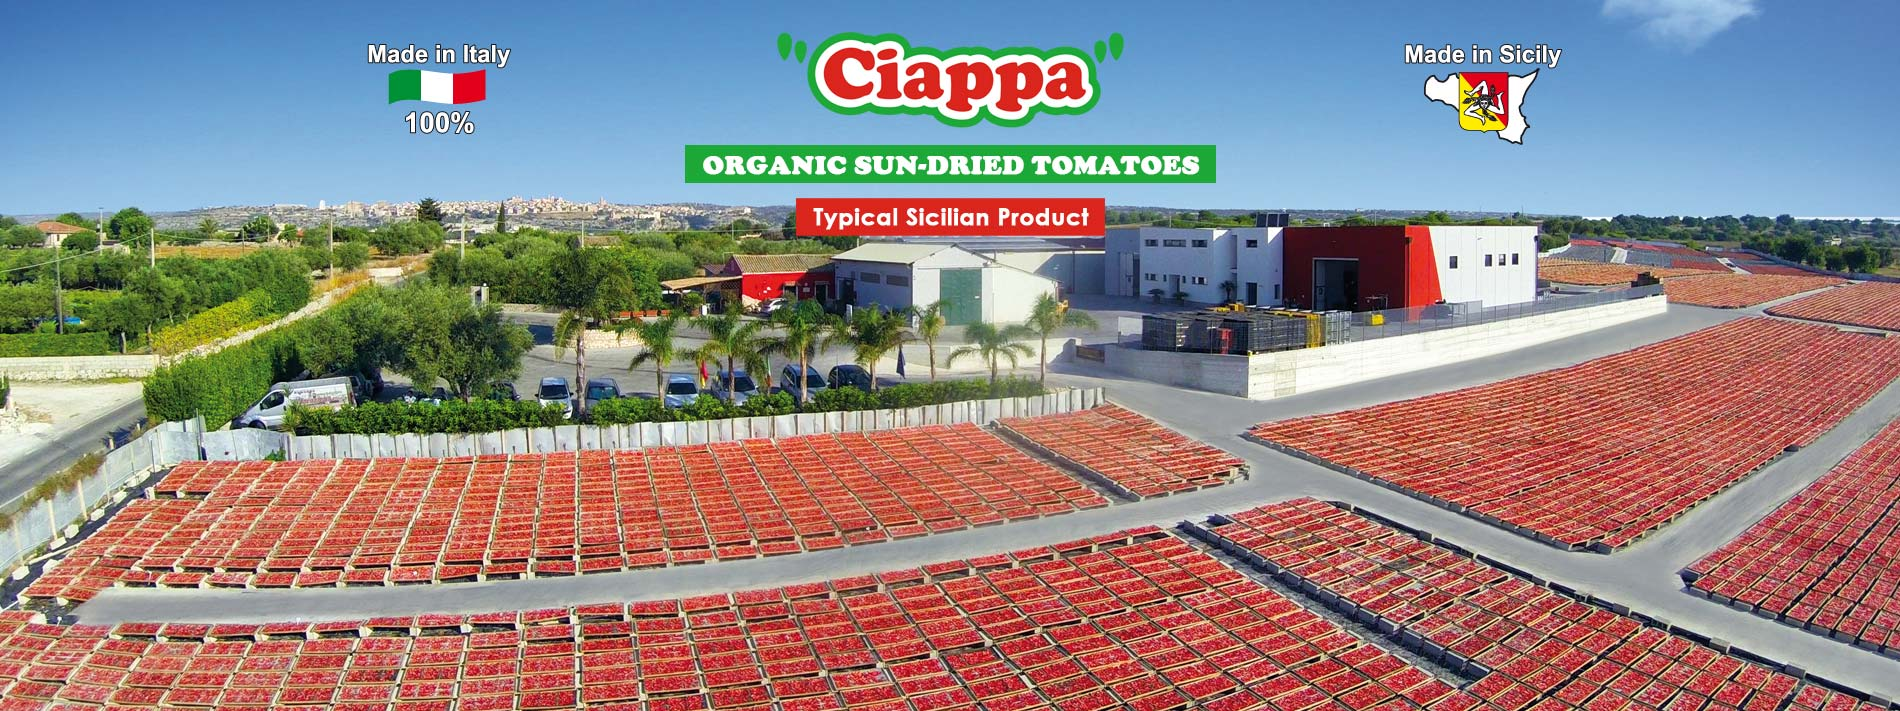 sun drying tomato - Ciappa typical sicilian product